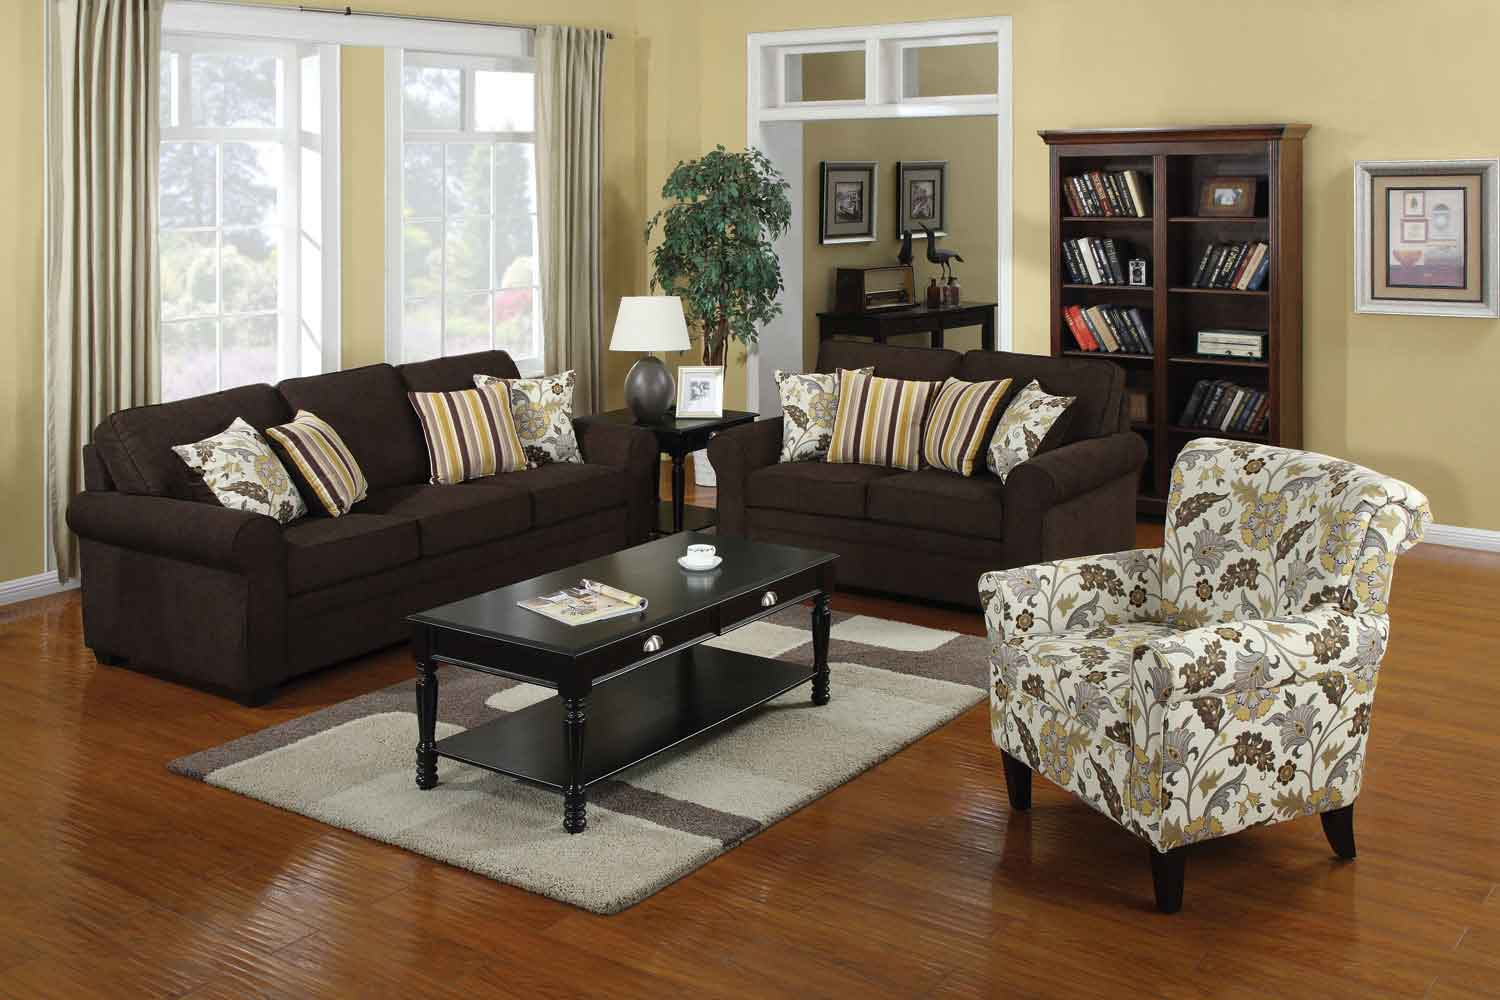 Coaster rosalie living room set brown black 504241 for Black living room set